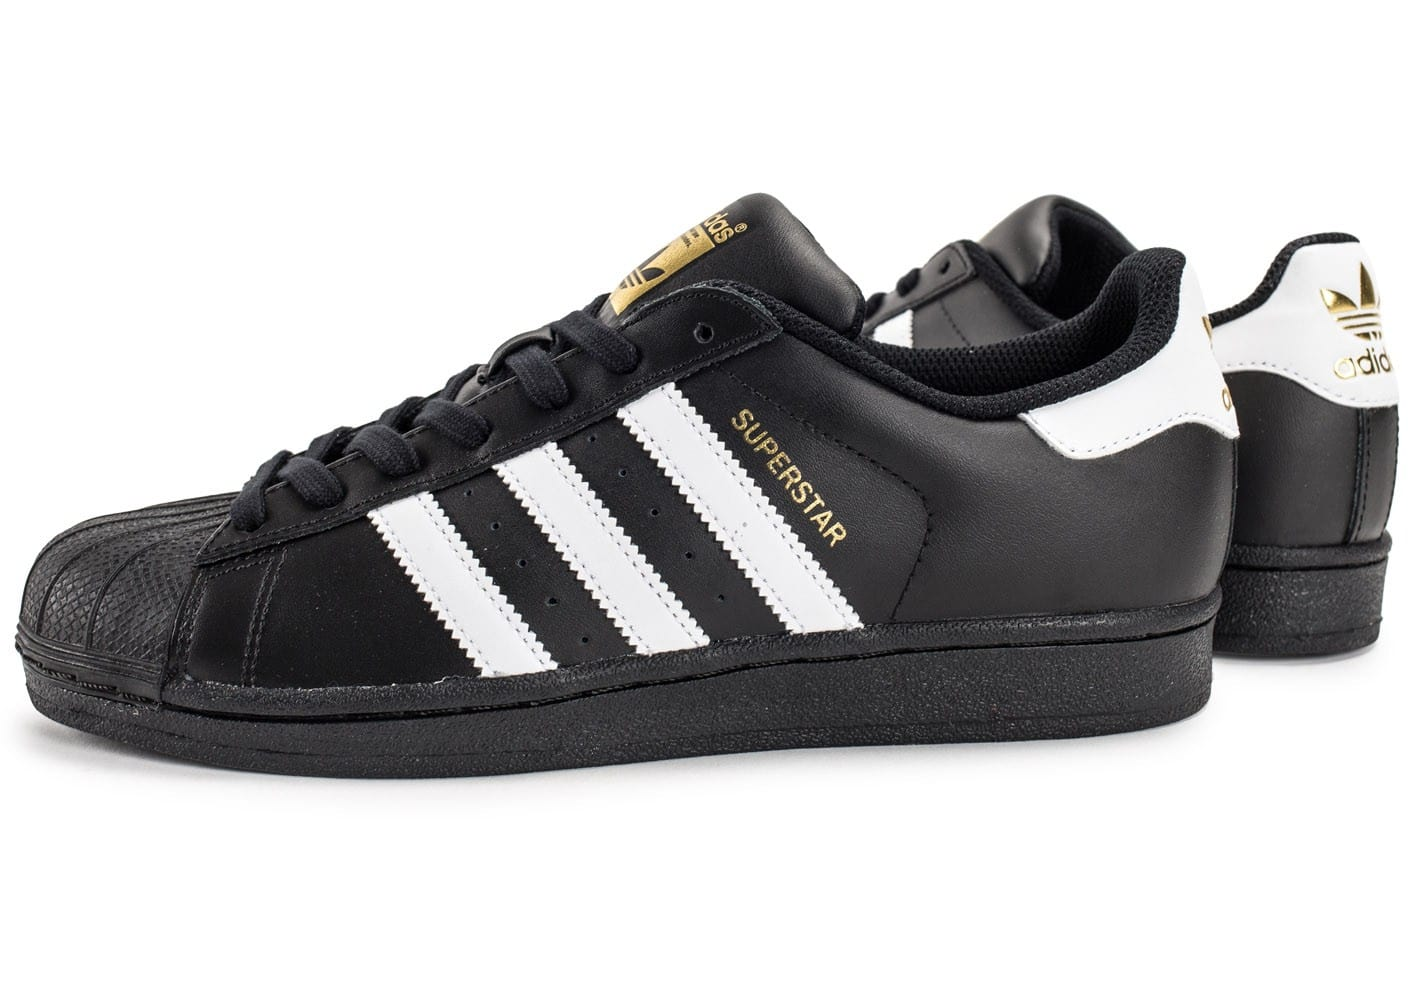 Authentique Adidas Homme Superstar Réduction Chausport Baskets gqdHc76wx